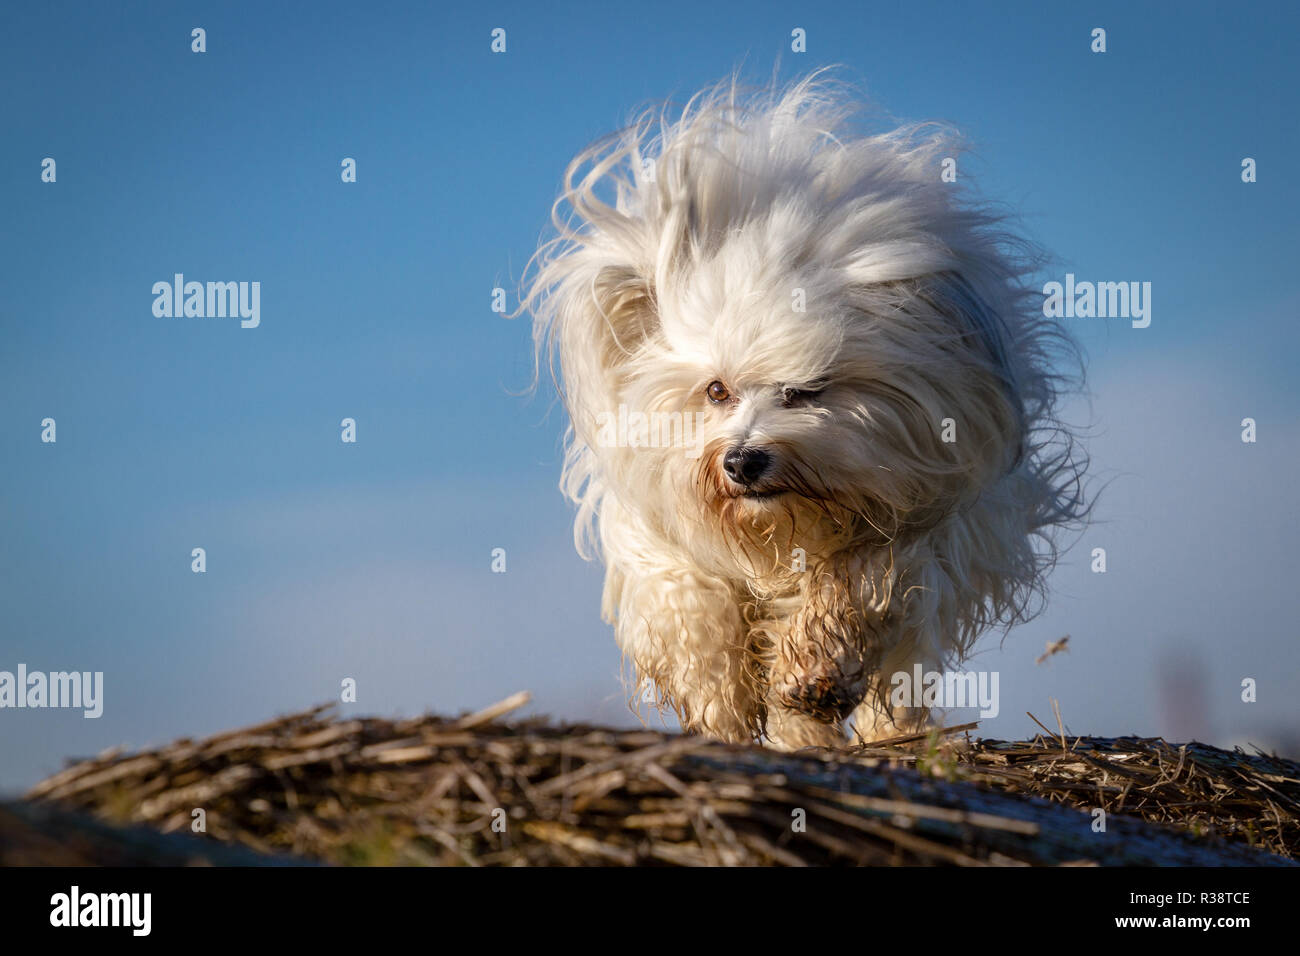 fur ball Stock Photo